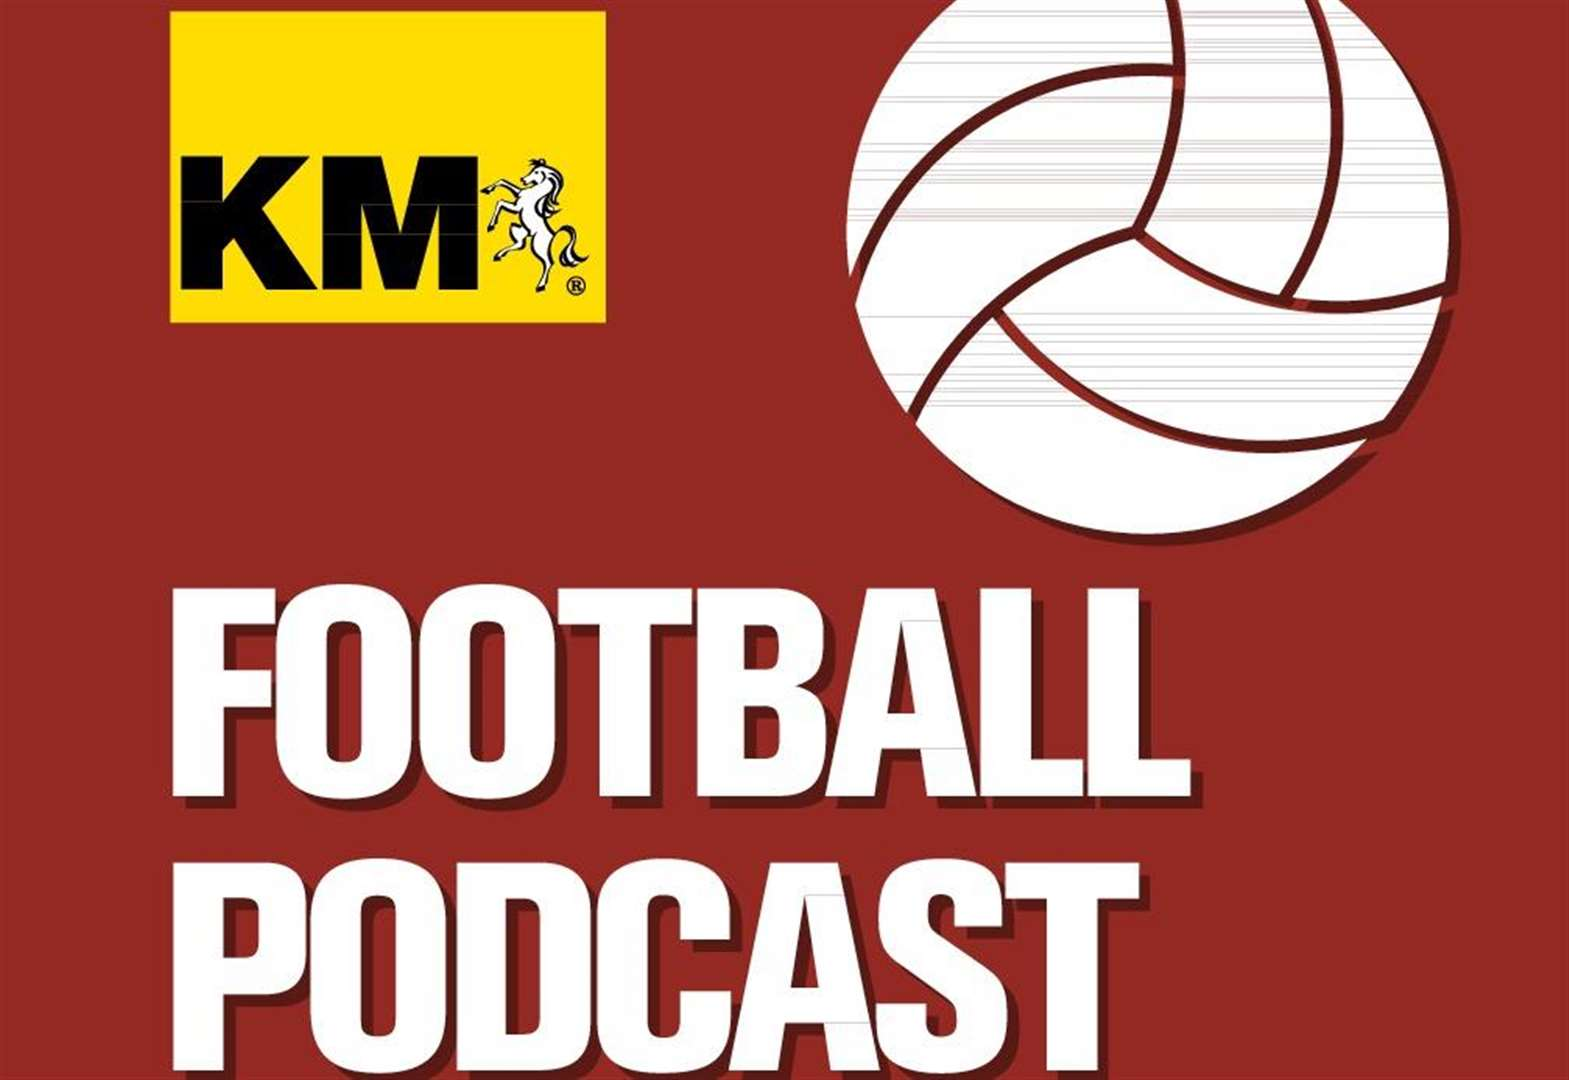 KM Football Podcast episode 5